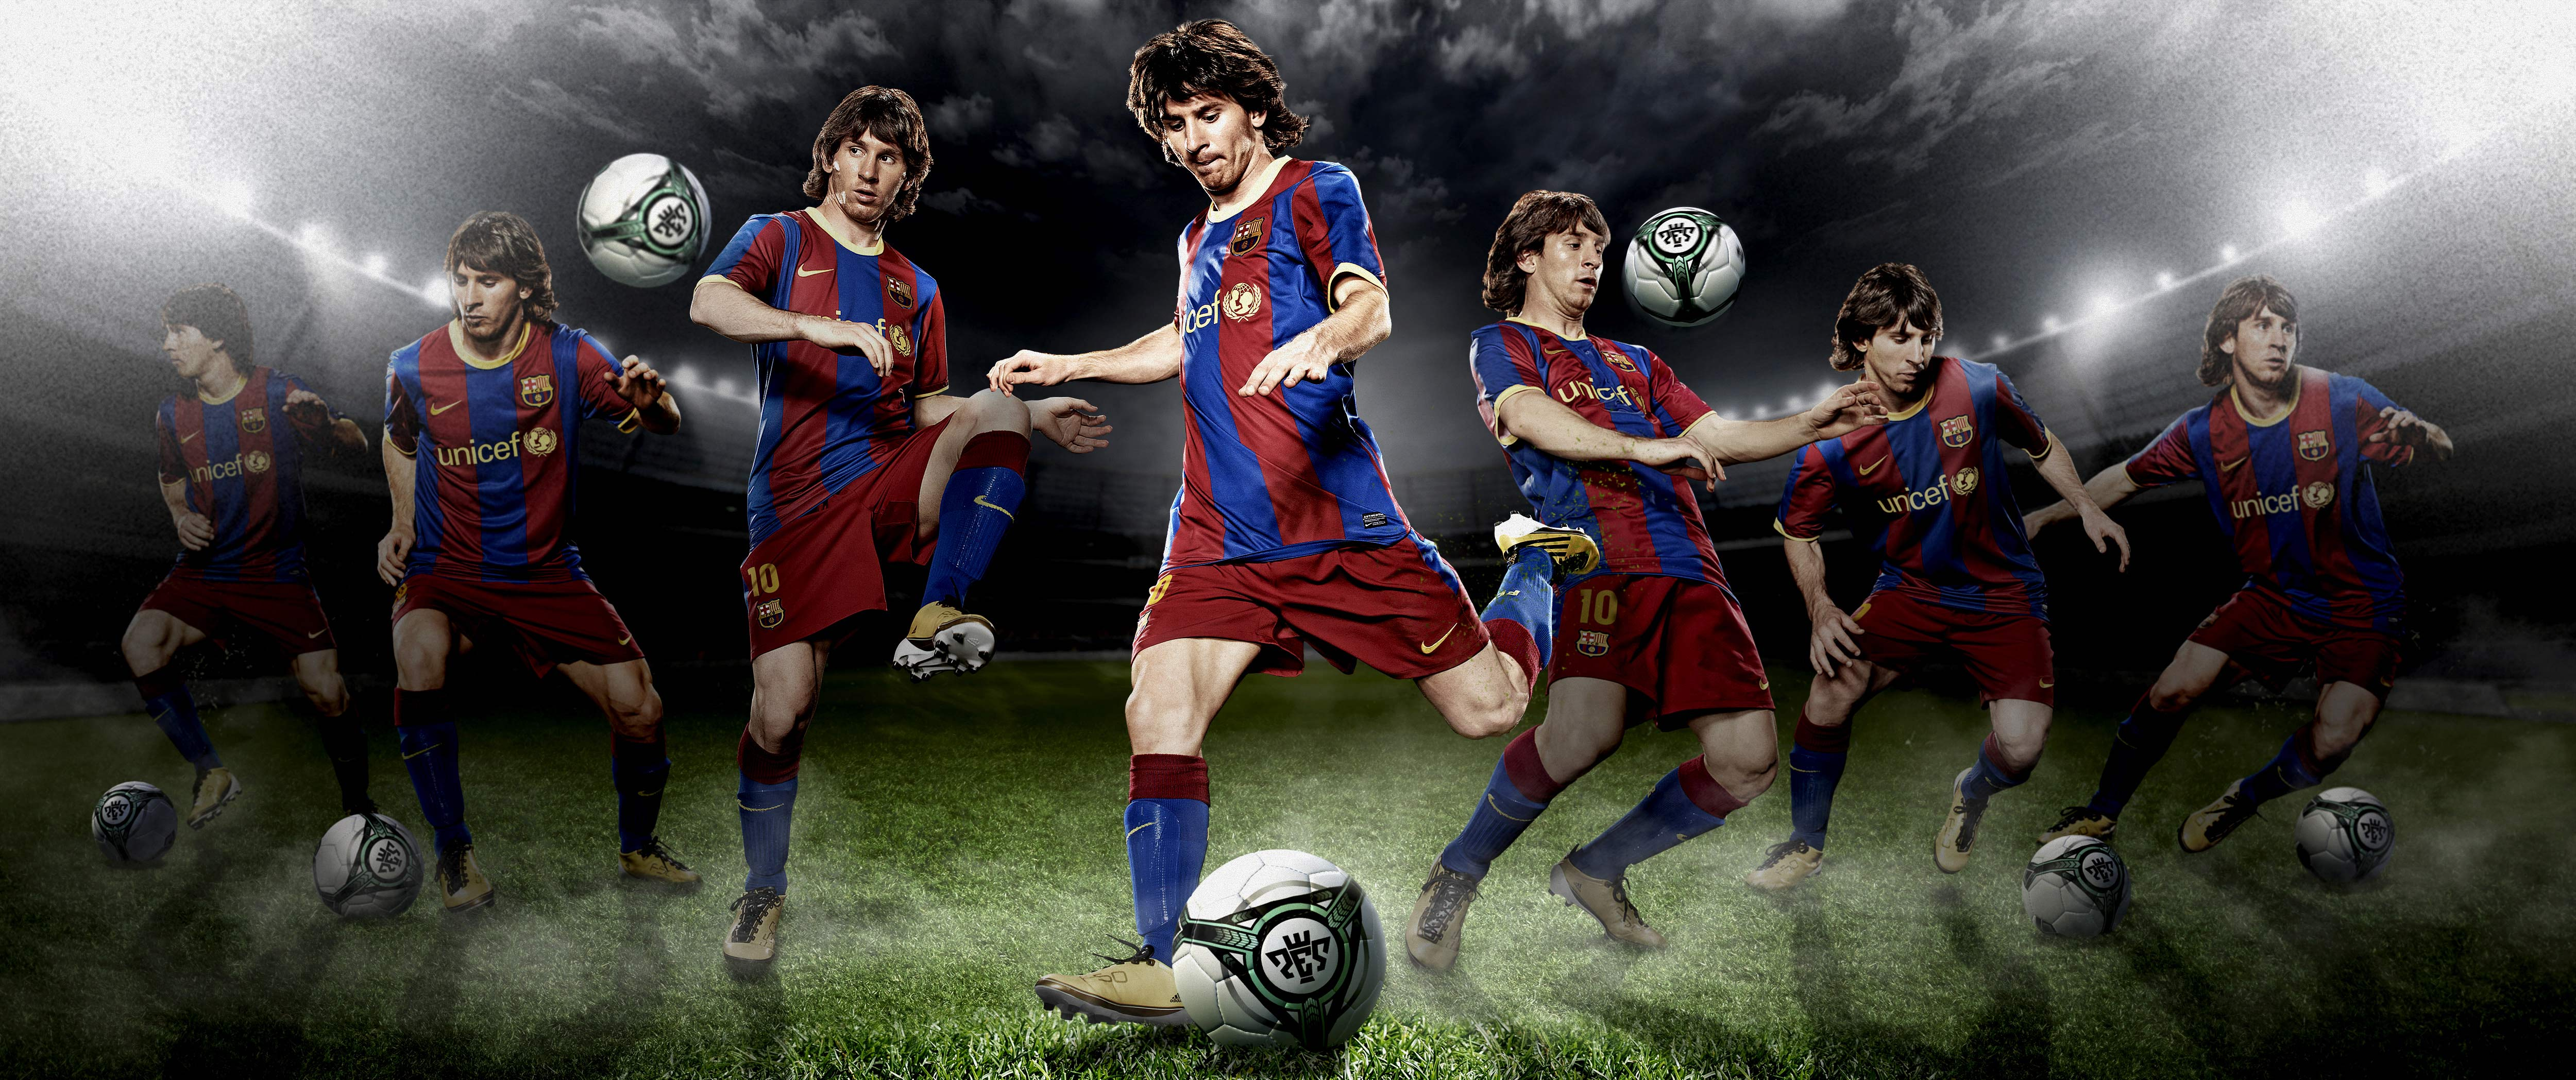 Soccer Players: PES 2011 3D Gets Details, Video, Shots